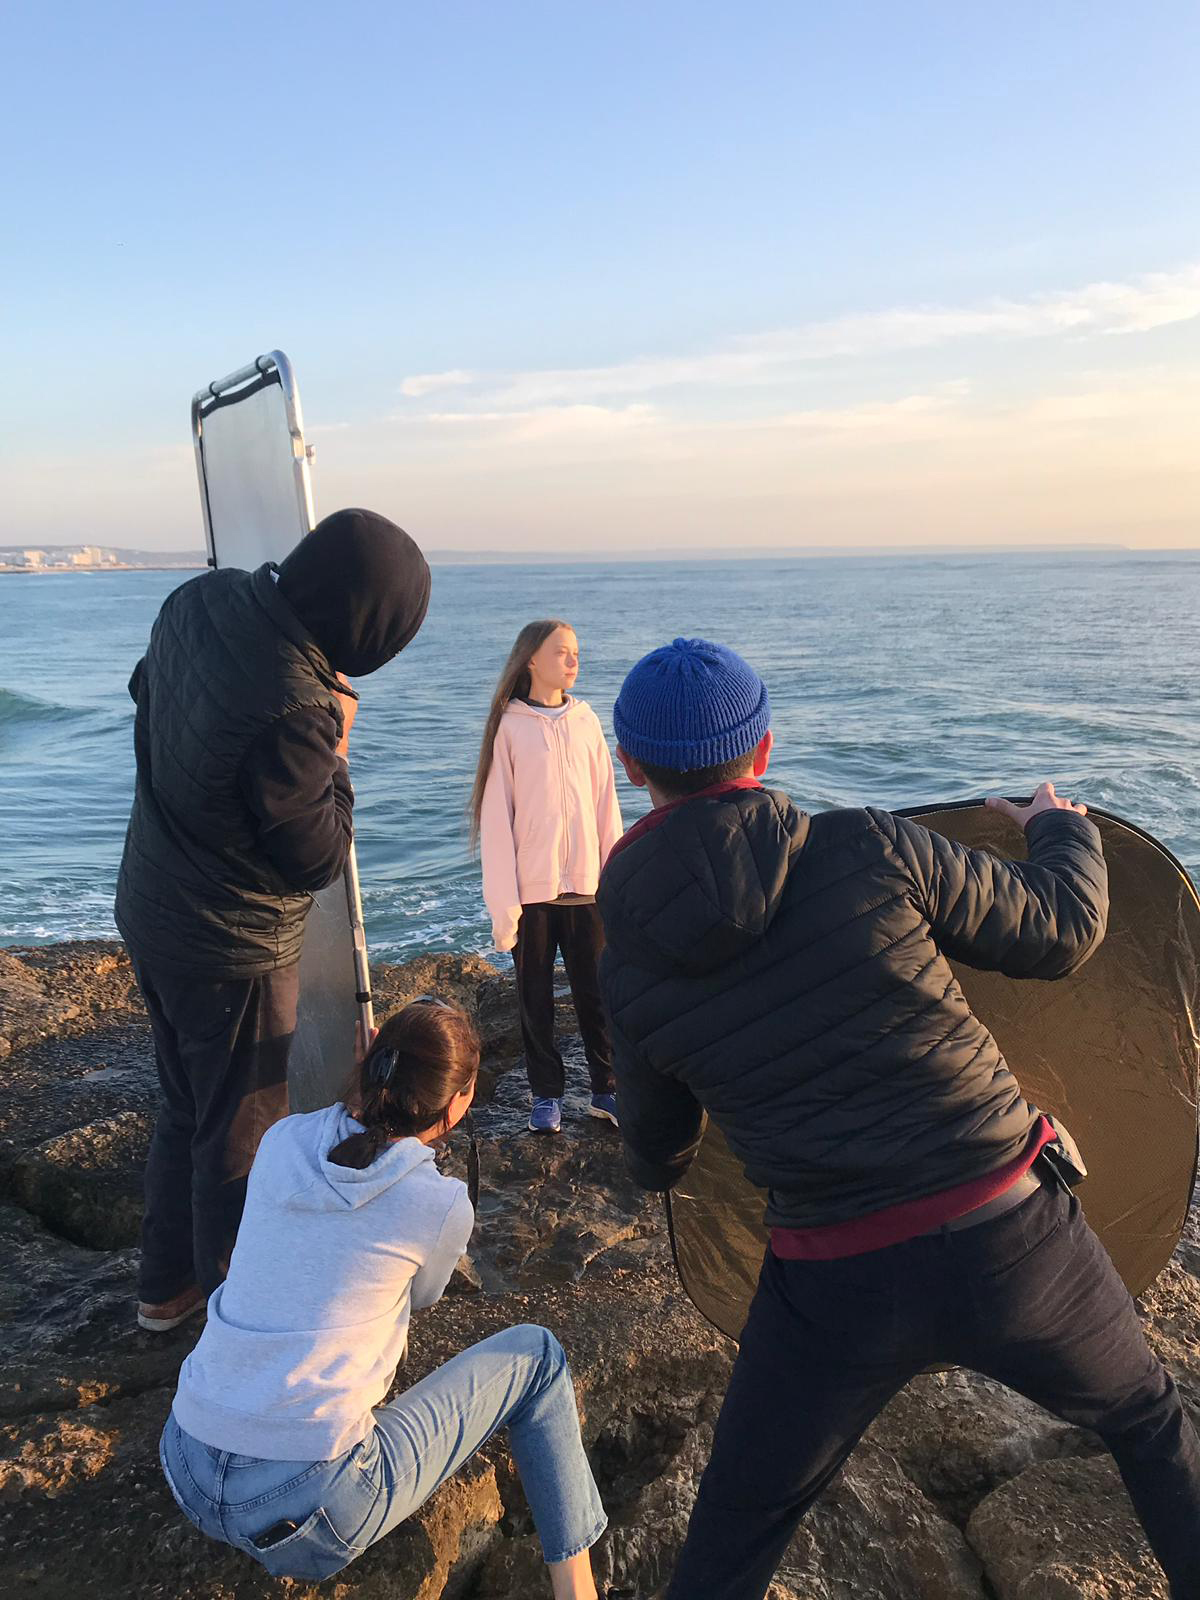 Photographer Evgenia Arbugaeva, who grew up in the Russian Arctic, scouted Lisbon for two days before choosing a rocky beach near the city as the setting for the TIME cover shoot on Dec. 4.